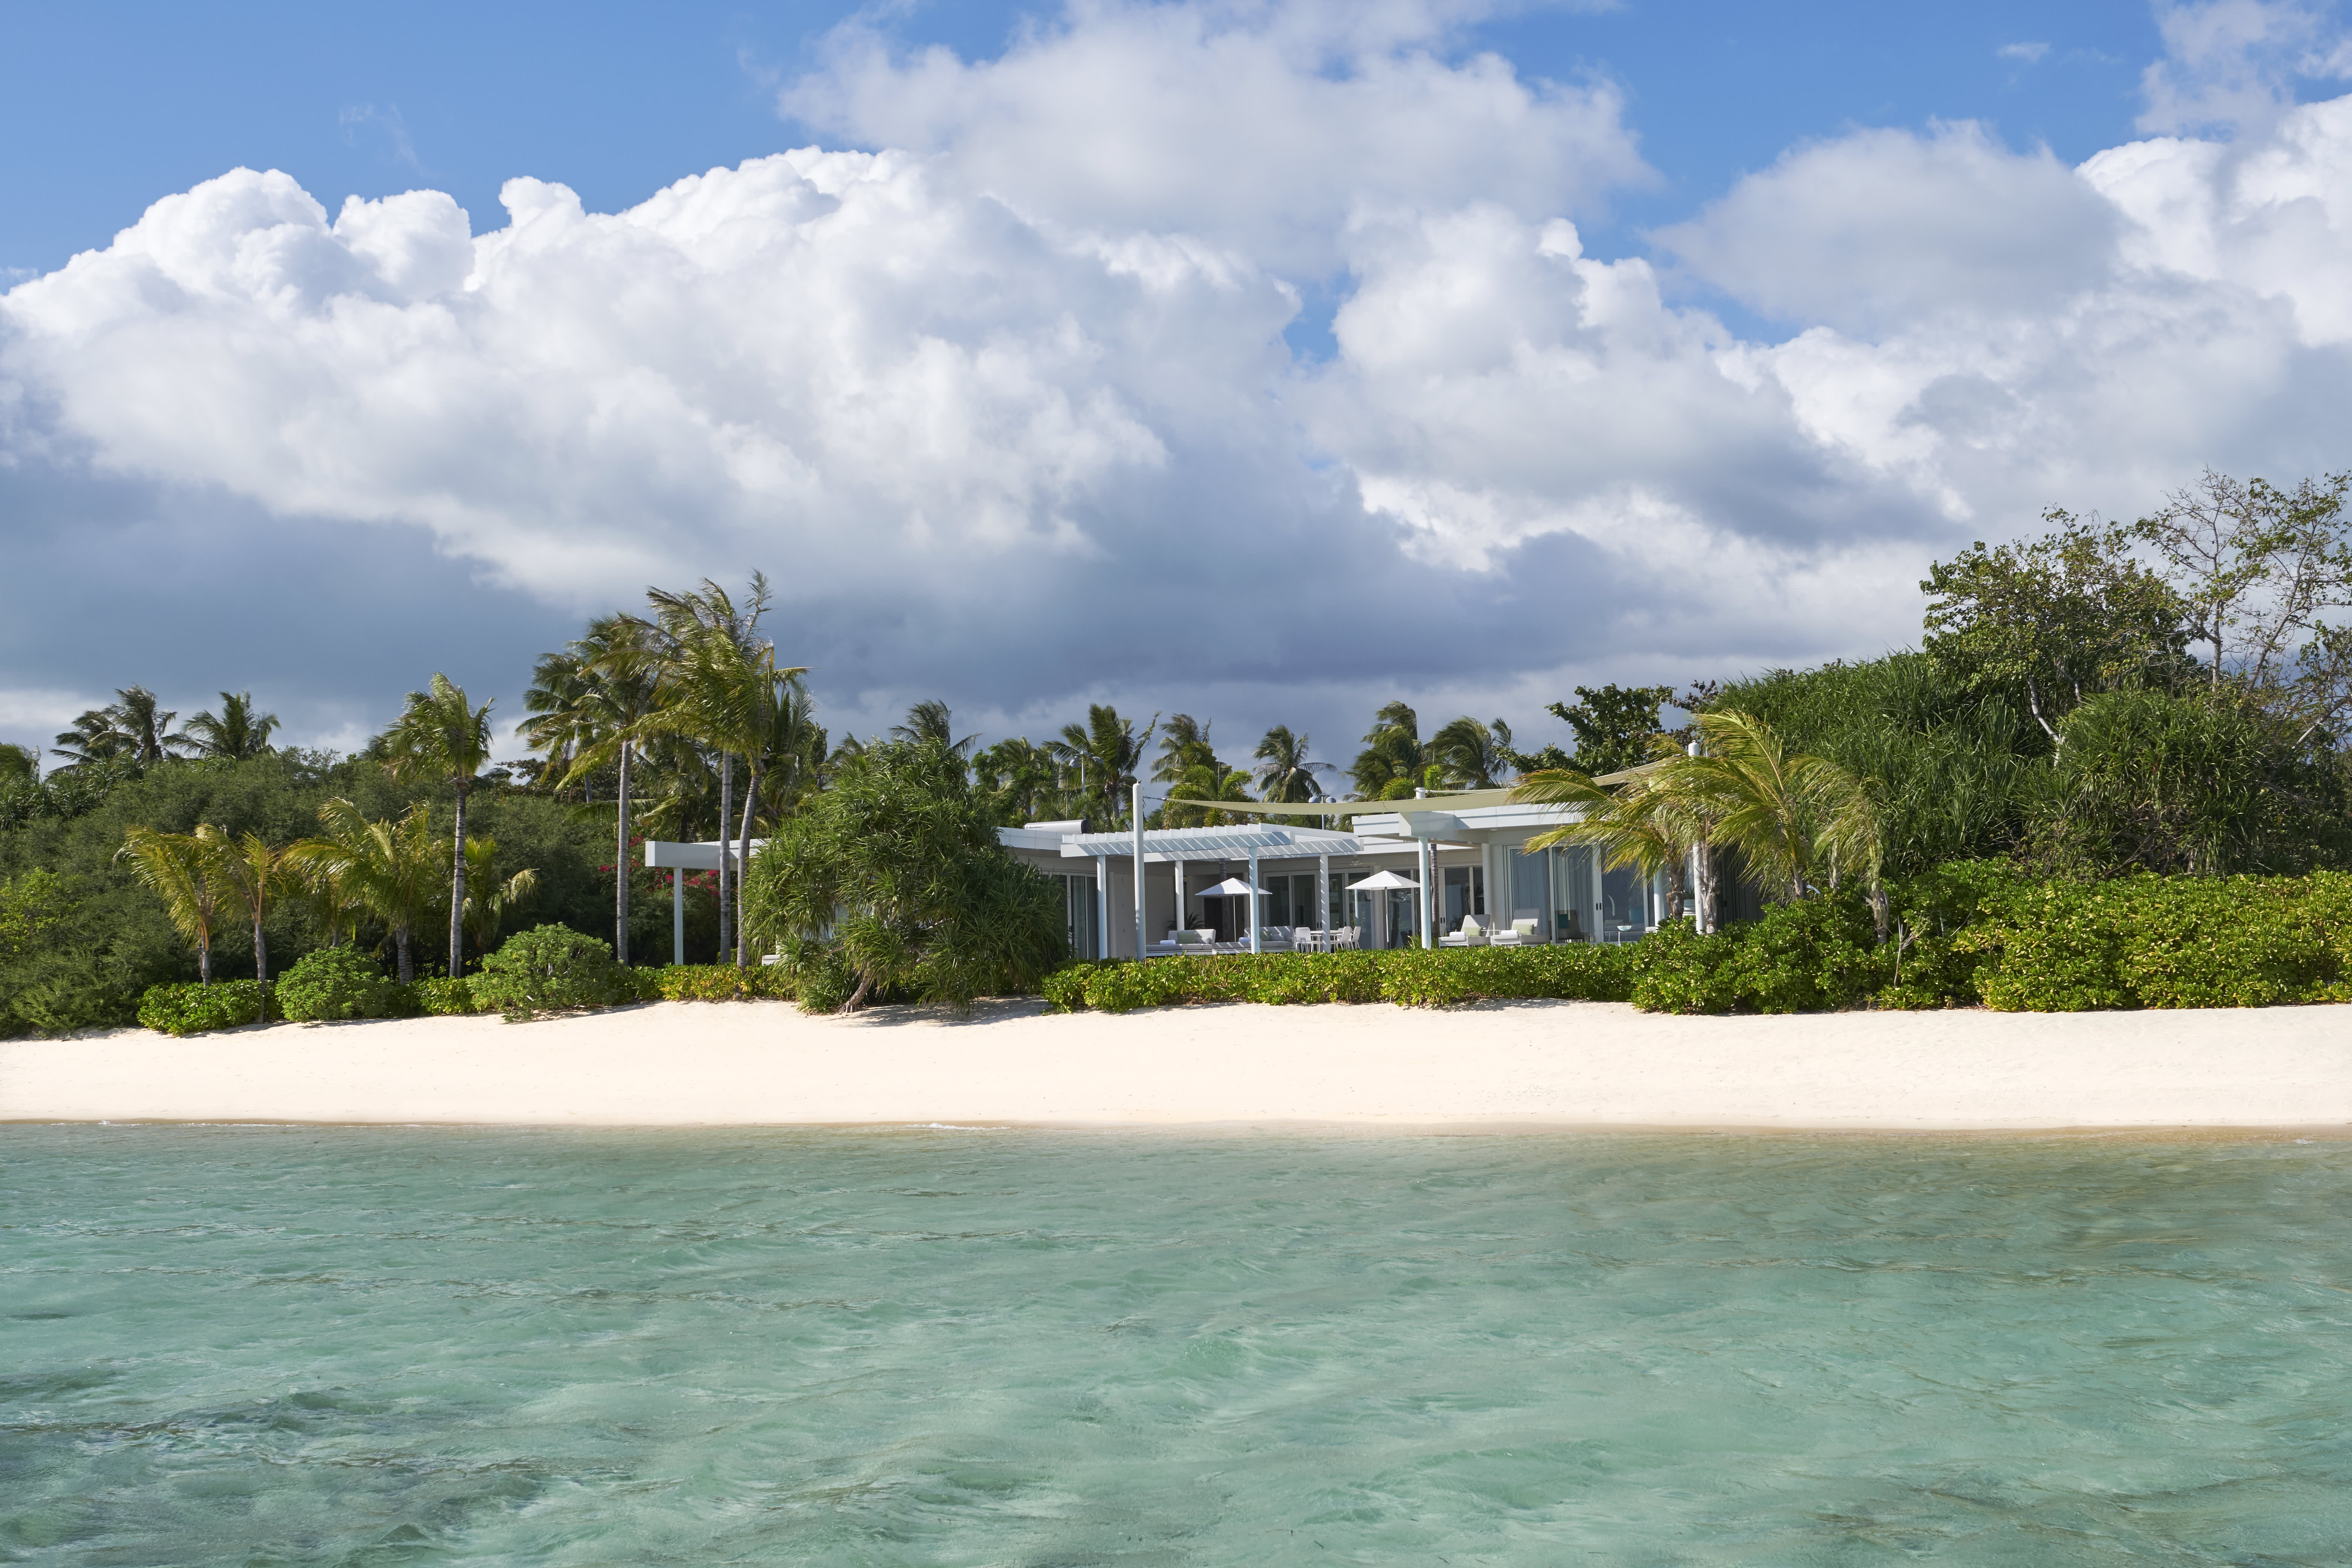 Photos of Banwa Private Island, the most expensive resort in the world